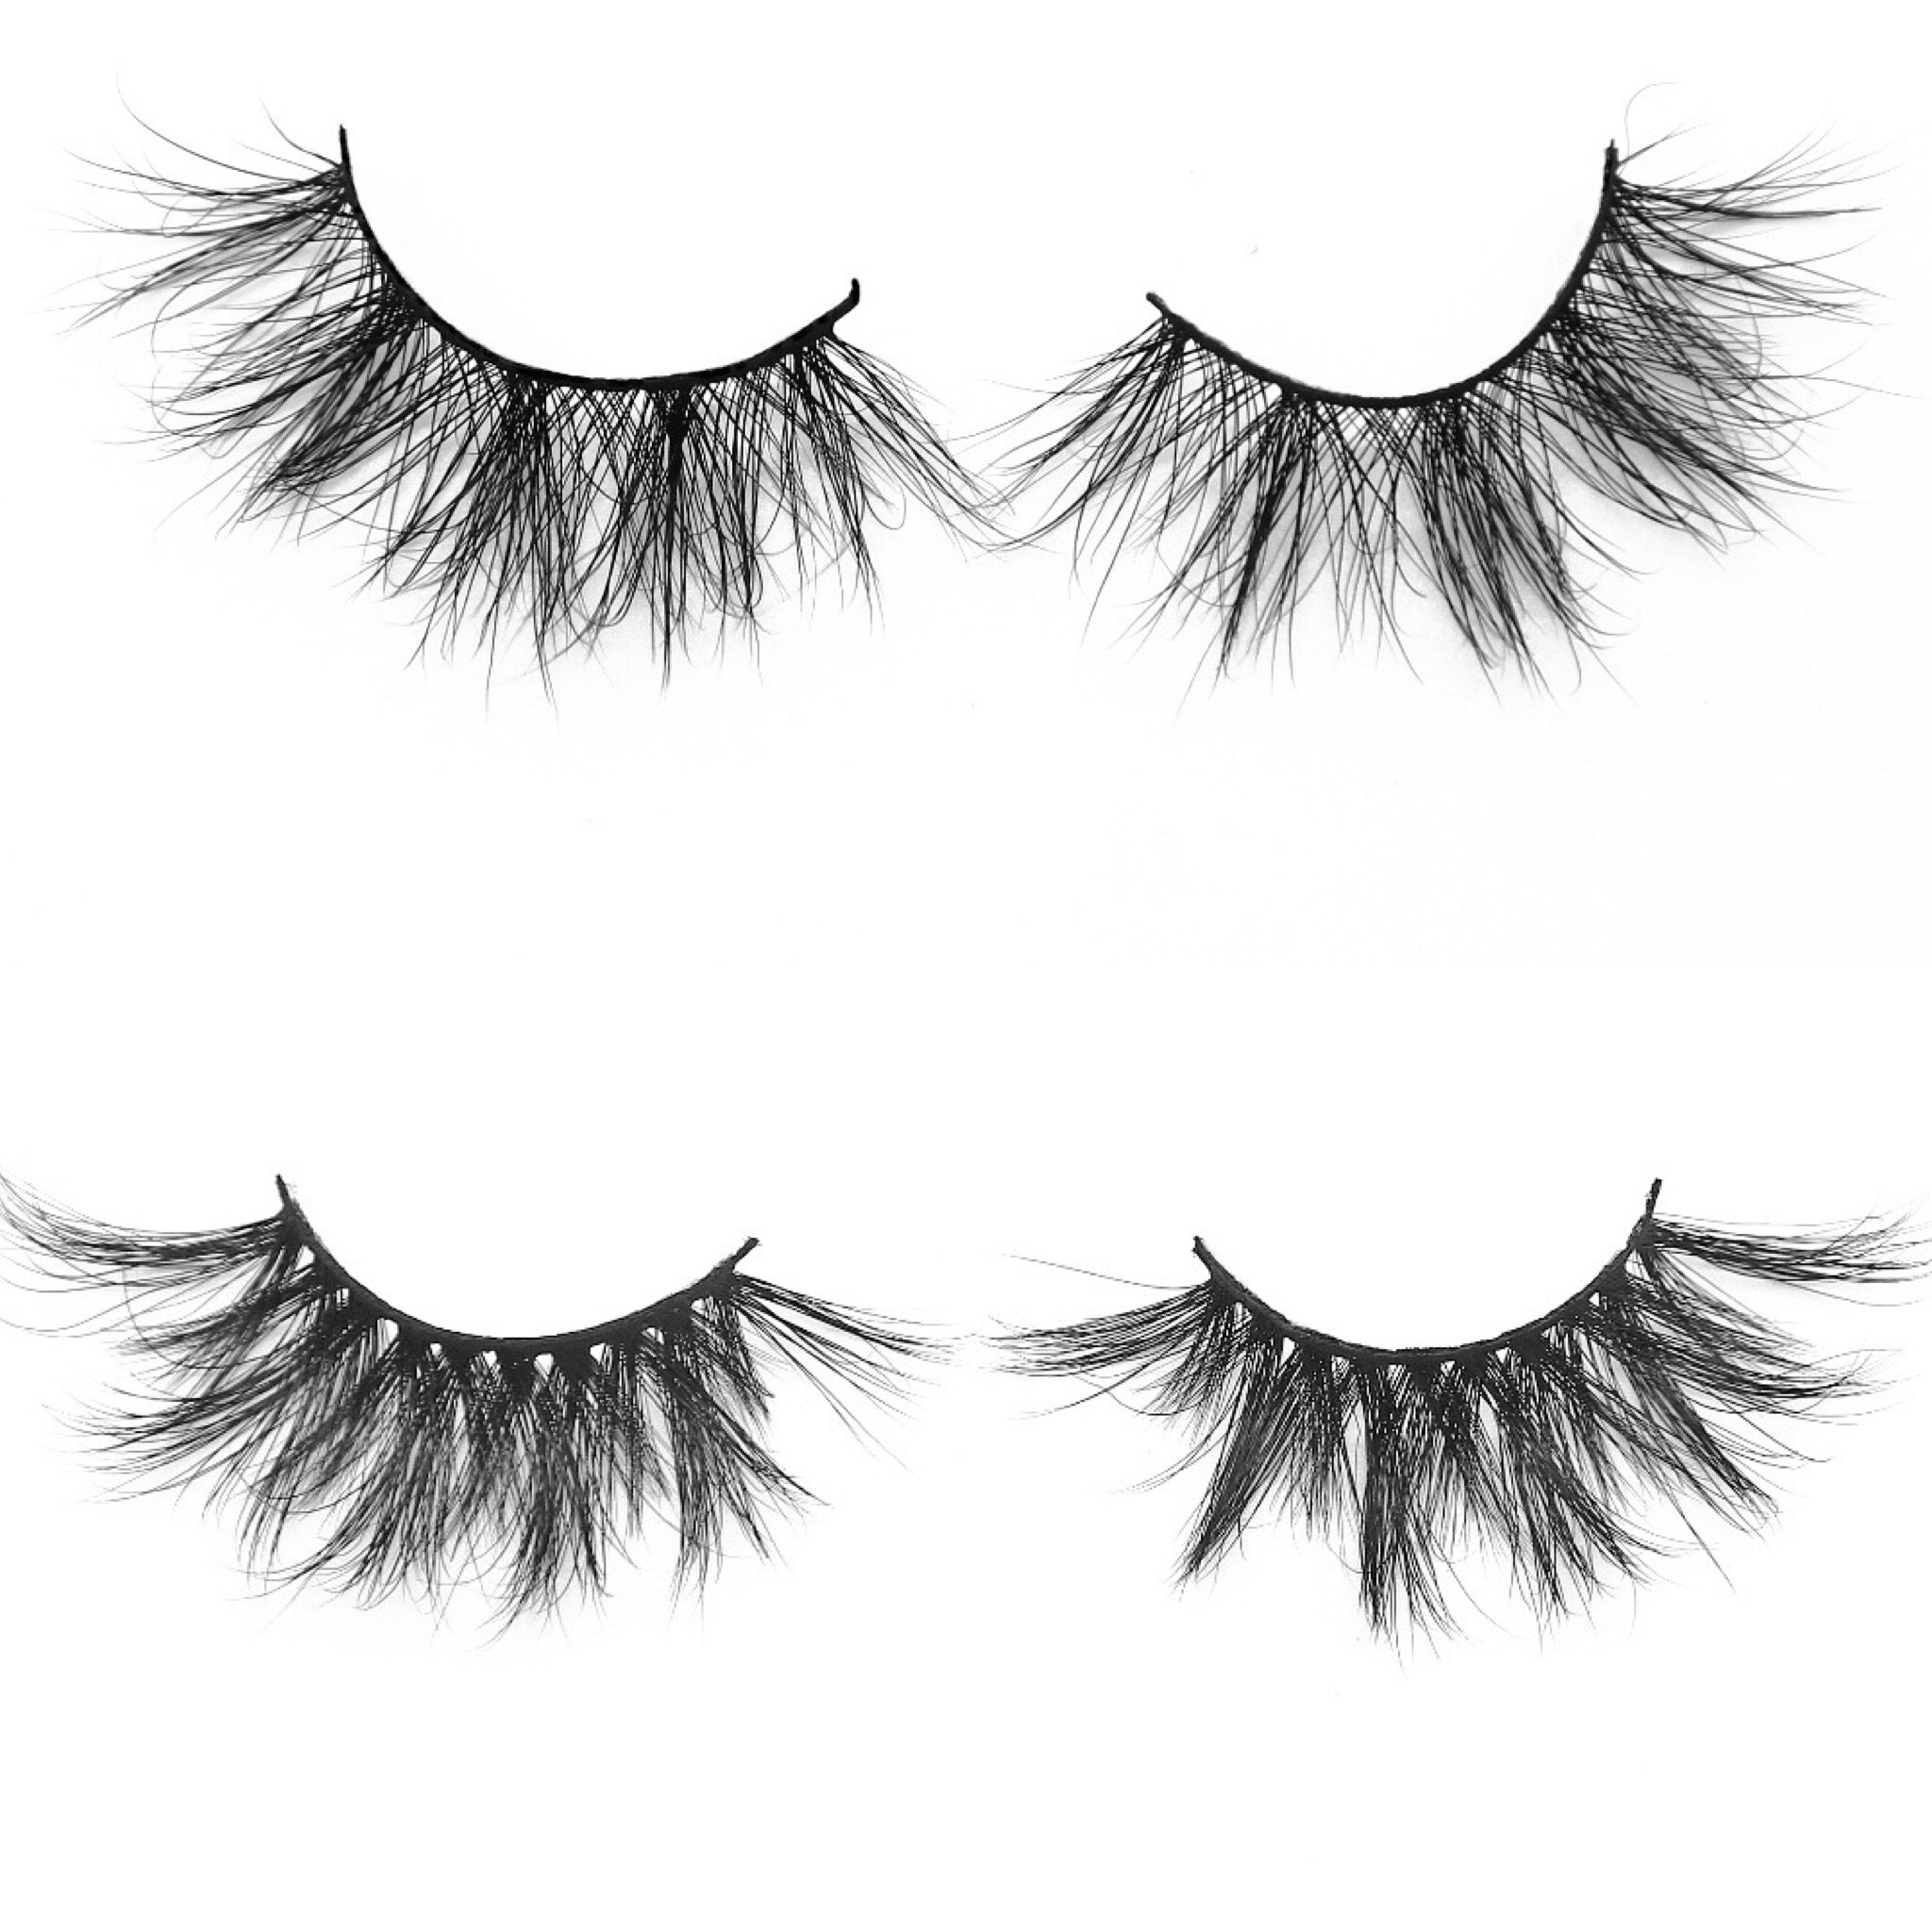 2 SETS OF LASHES